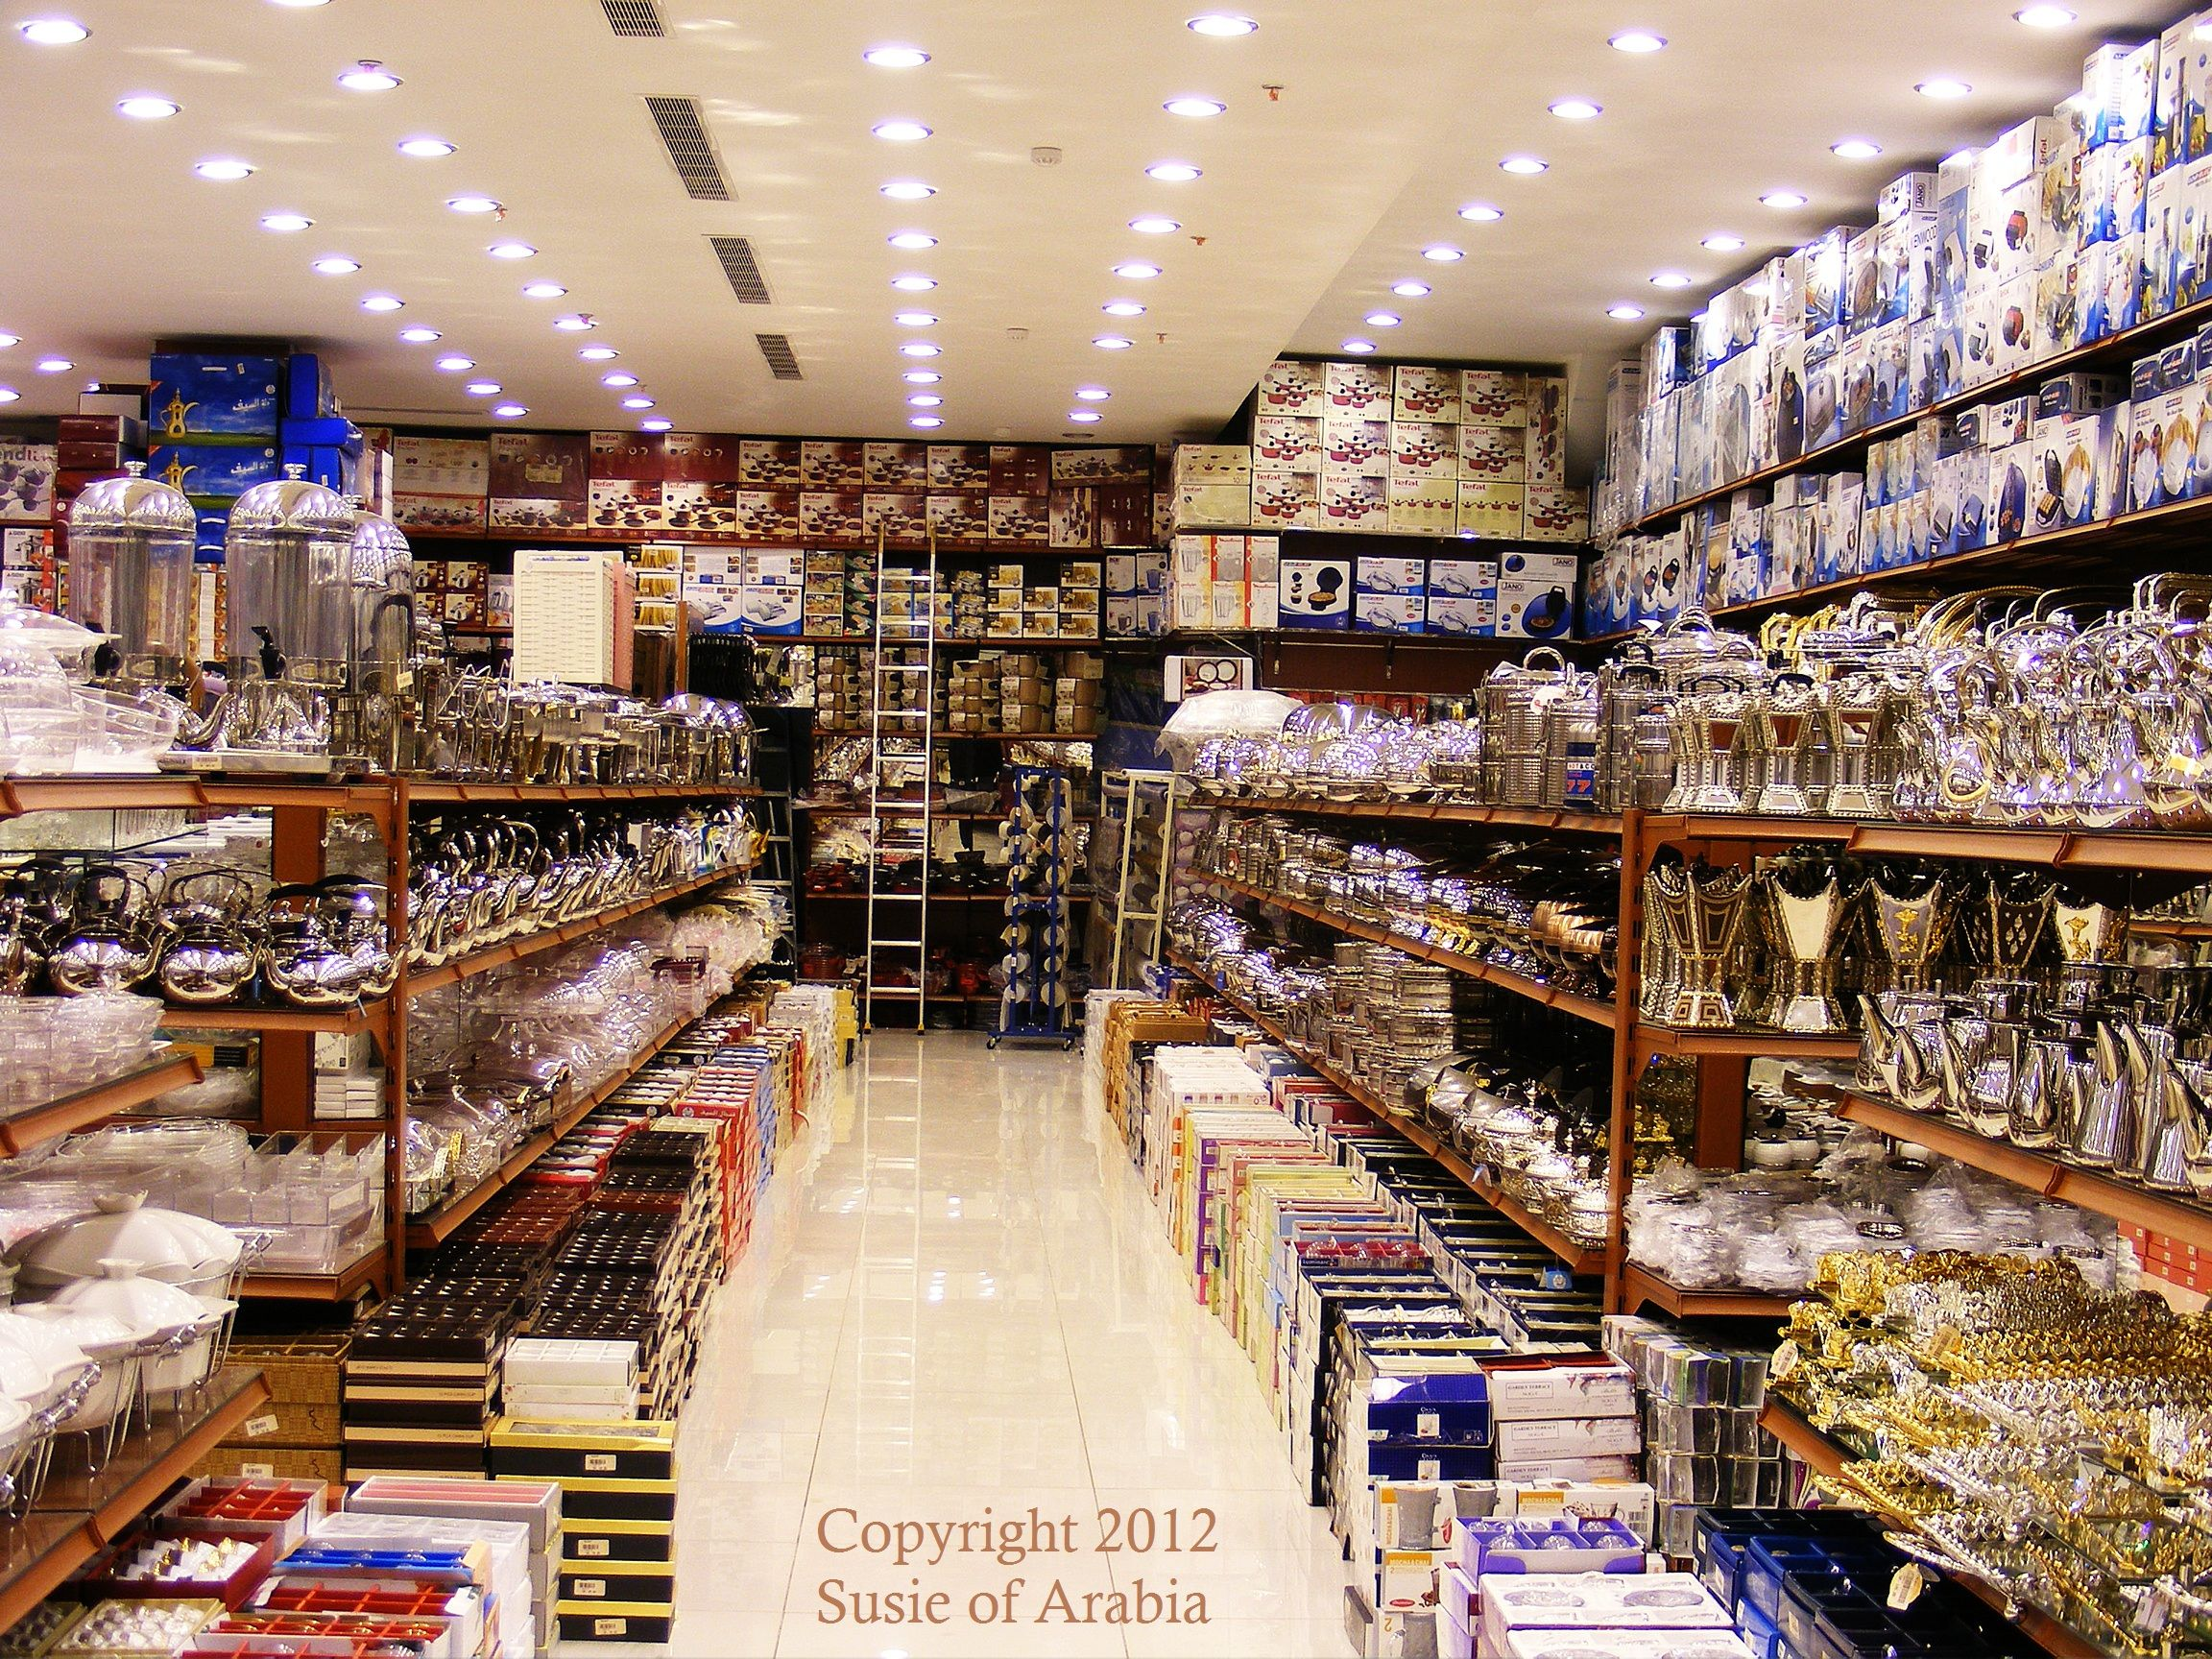 there are many home decor shops like this one in jeddah, with a